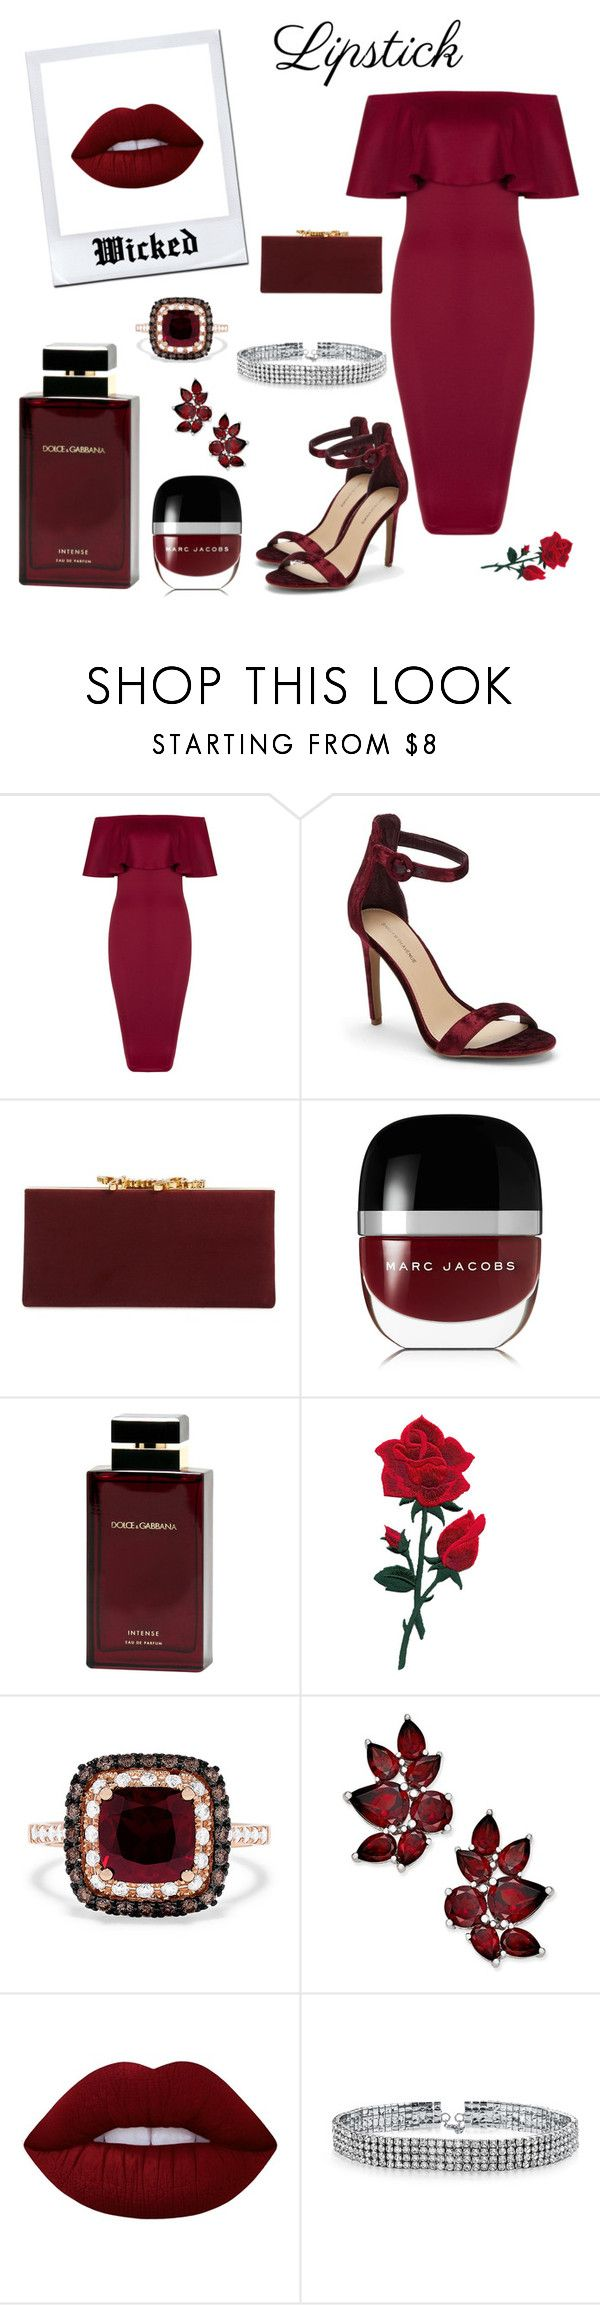 """""""OOTD (Lipstick Lime Crime Wicked)"""" by cybertrasher ❤ liked on Polyvore featuring beauty, Saks Fifth Avenue, Jimmy Choo, Marc Jacobs, Dolce&Gabbana, Effy Jewelry, Lime Crime and Bling Jewelry"""